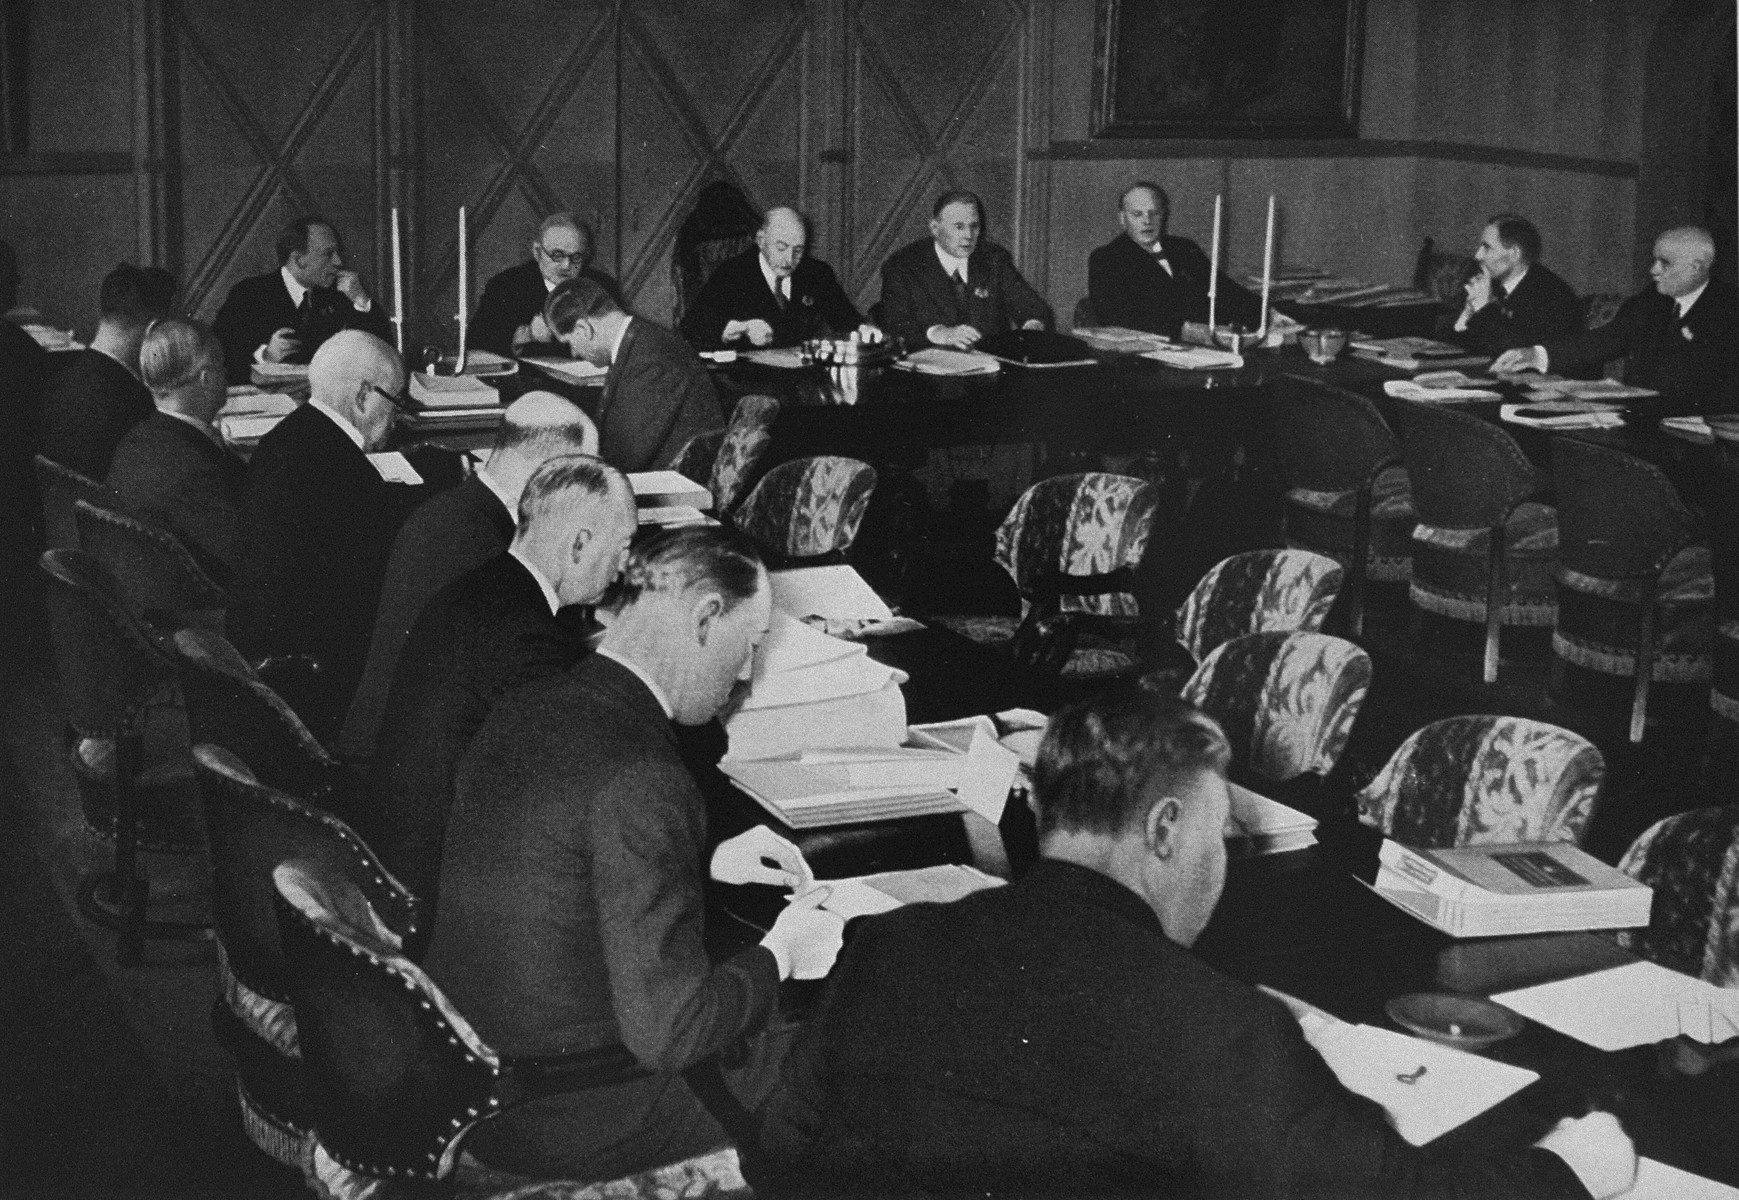 The International Olympic Committee meets in Oslo to hear a report on preparations for the following year's games.